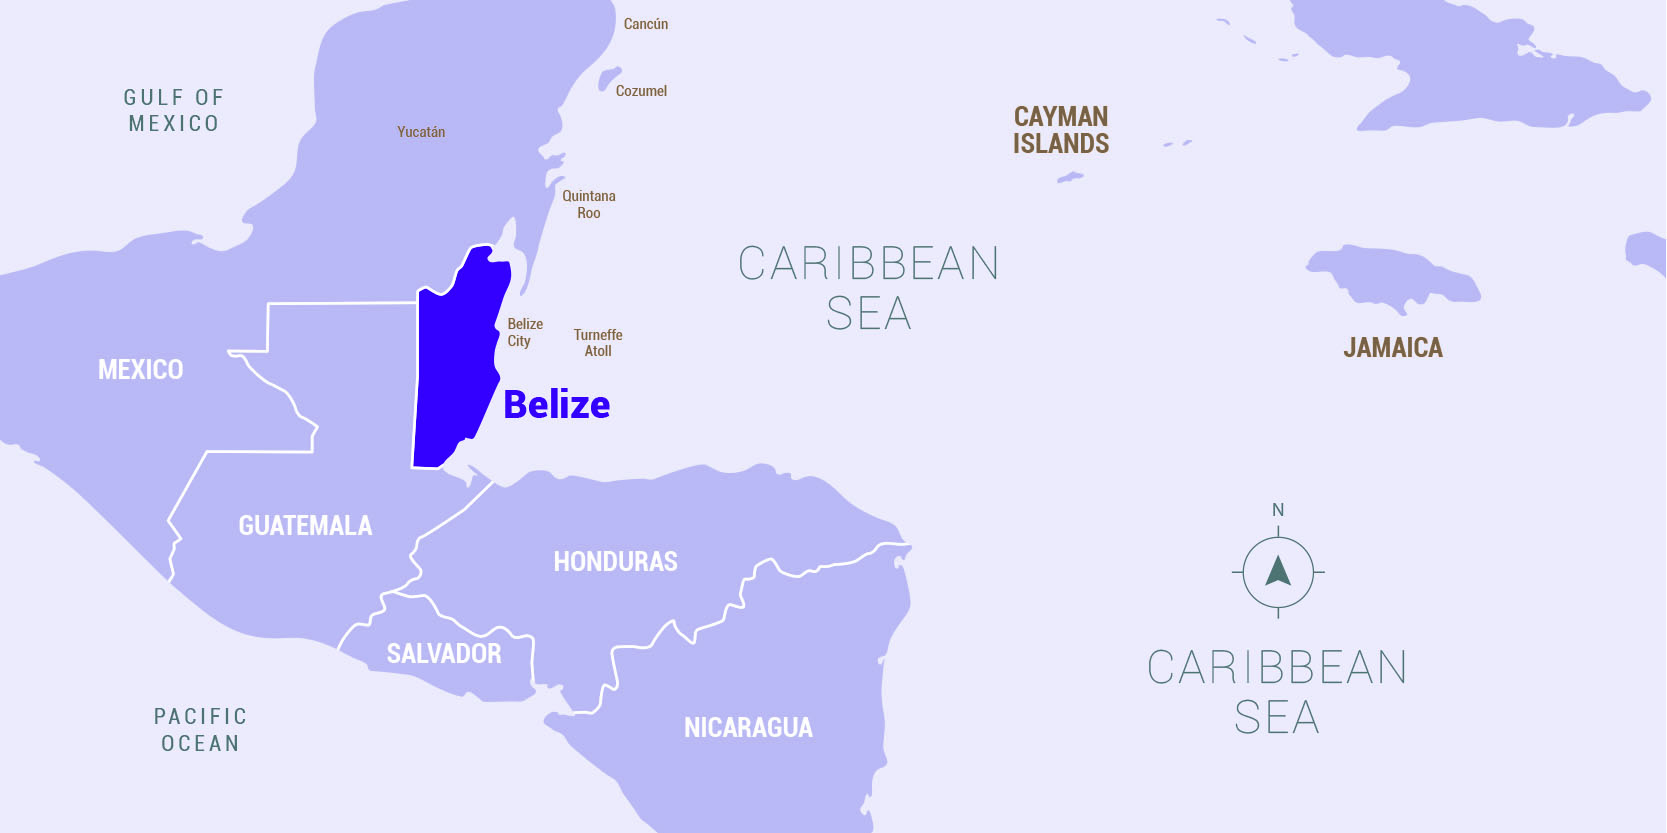 Central-America-Belize-Fishing-Map.jpg